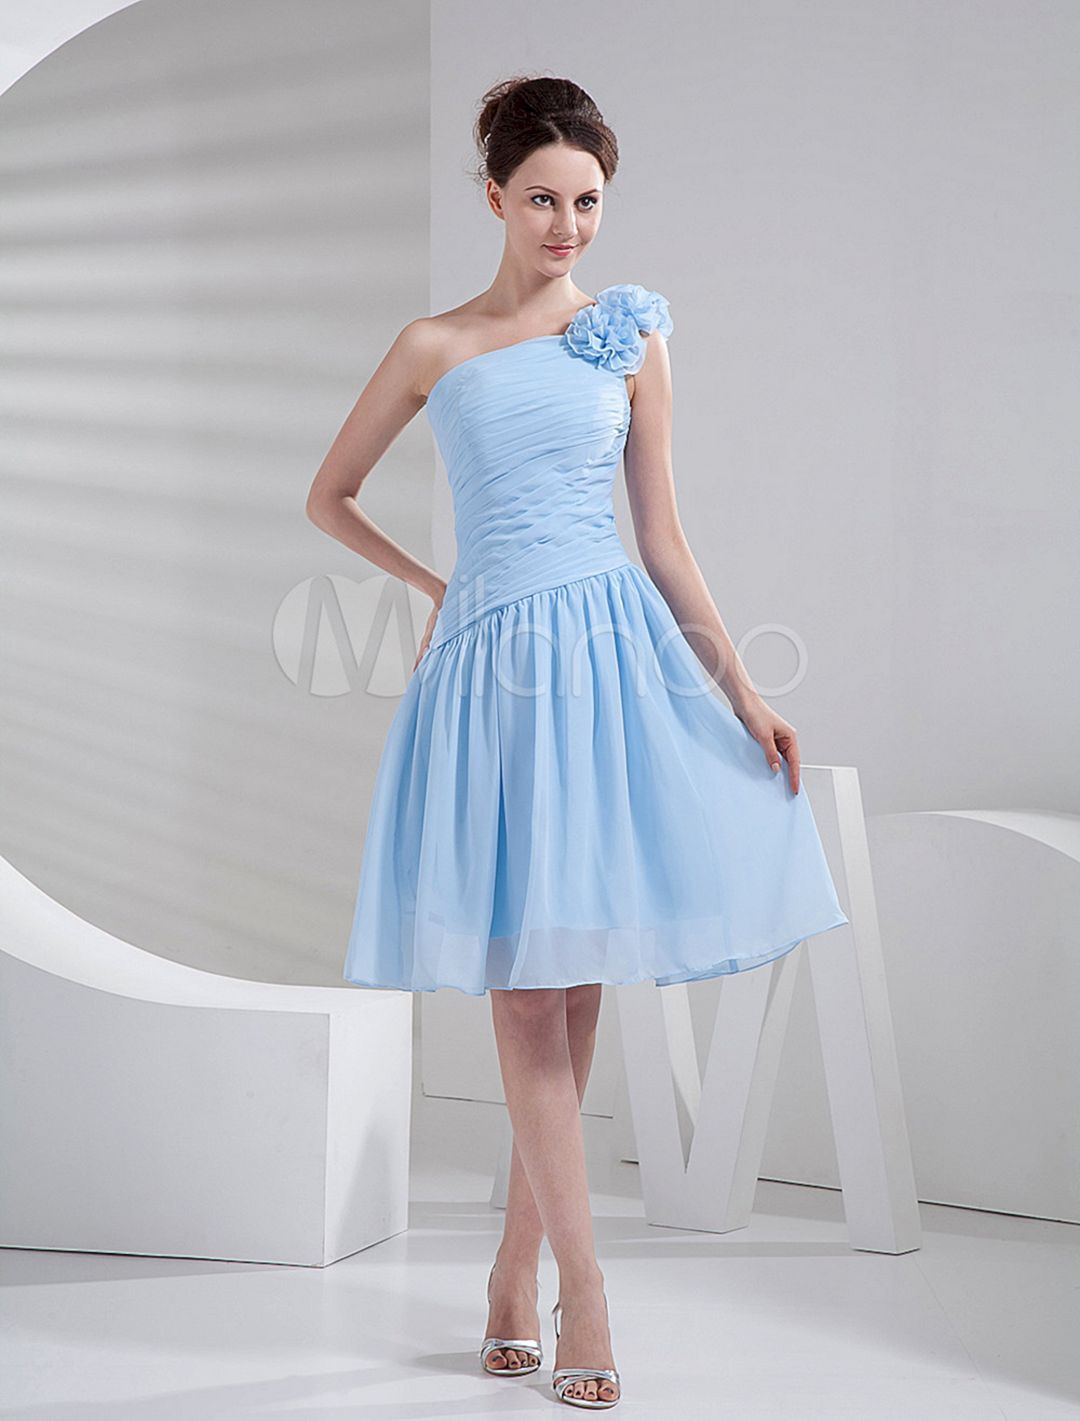 beautiful collection sky dress for women styles woman style